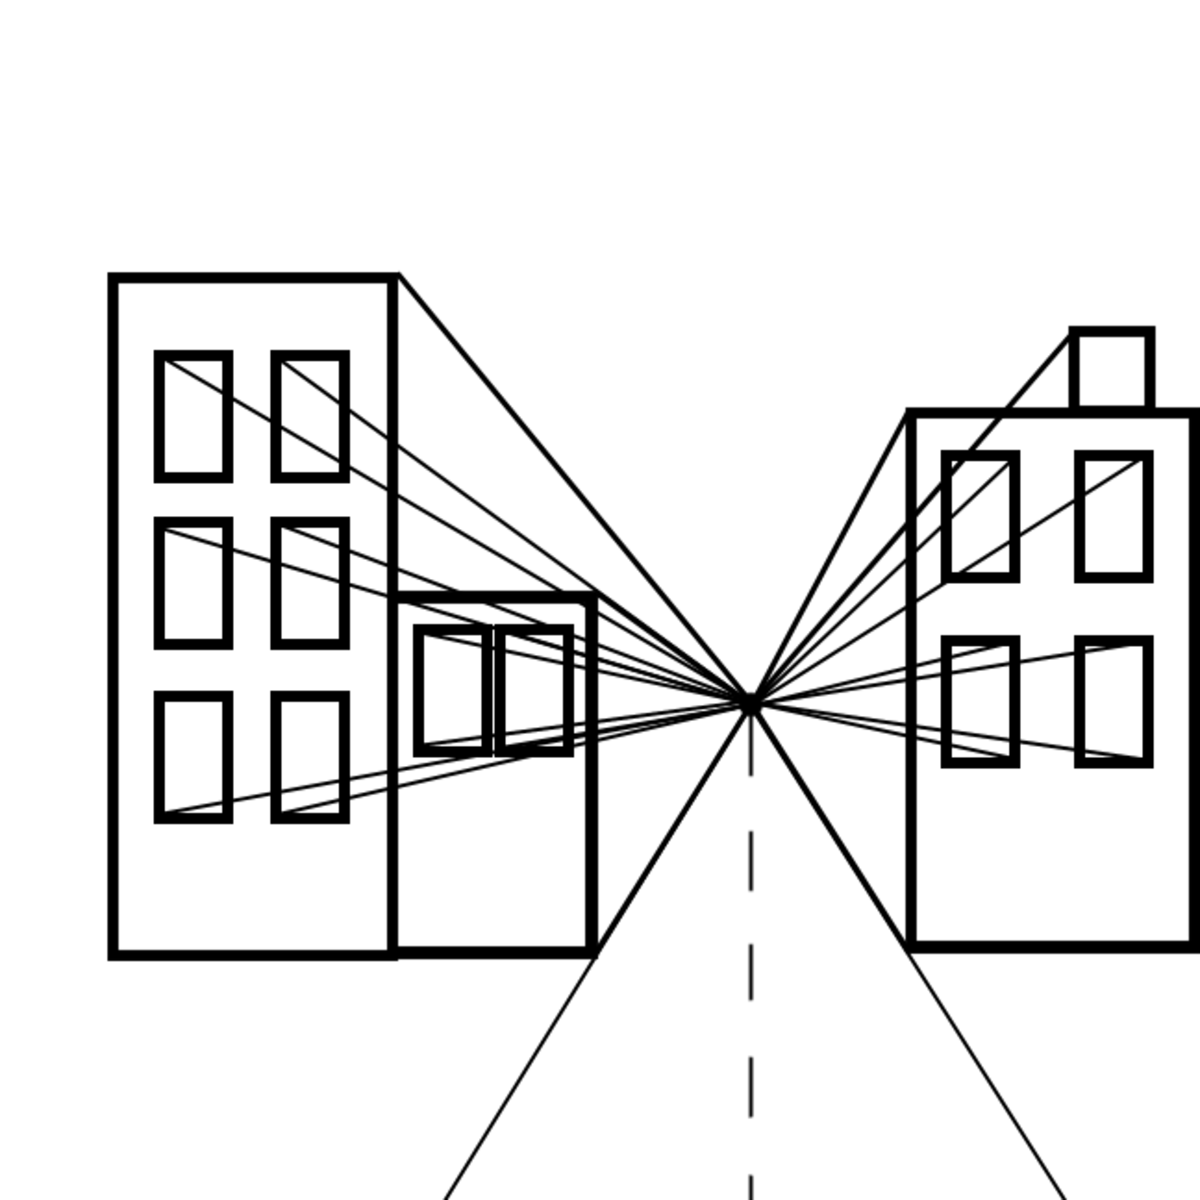 2. Draw the lines.